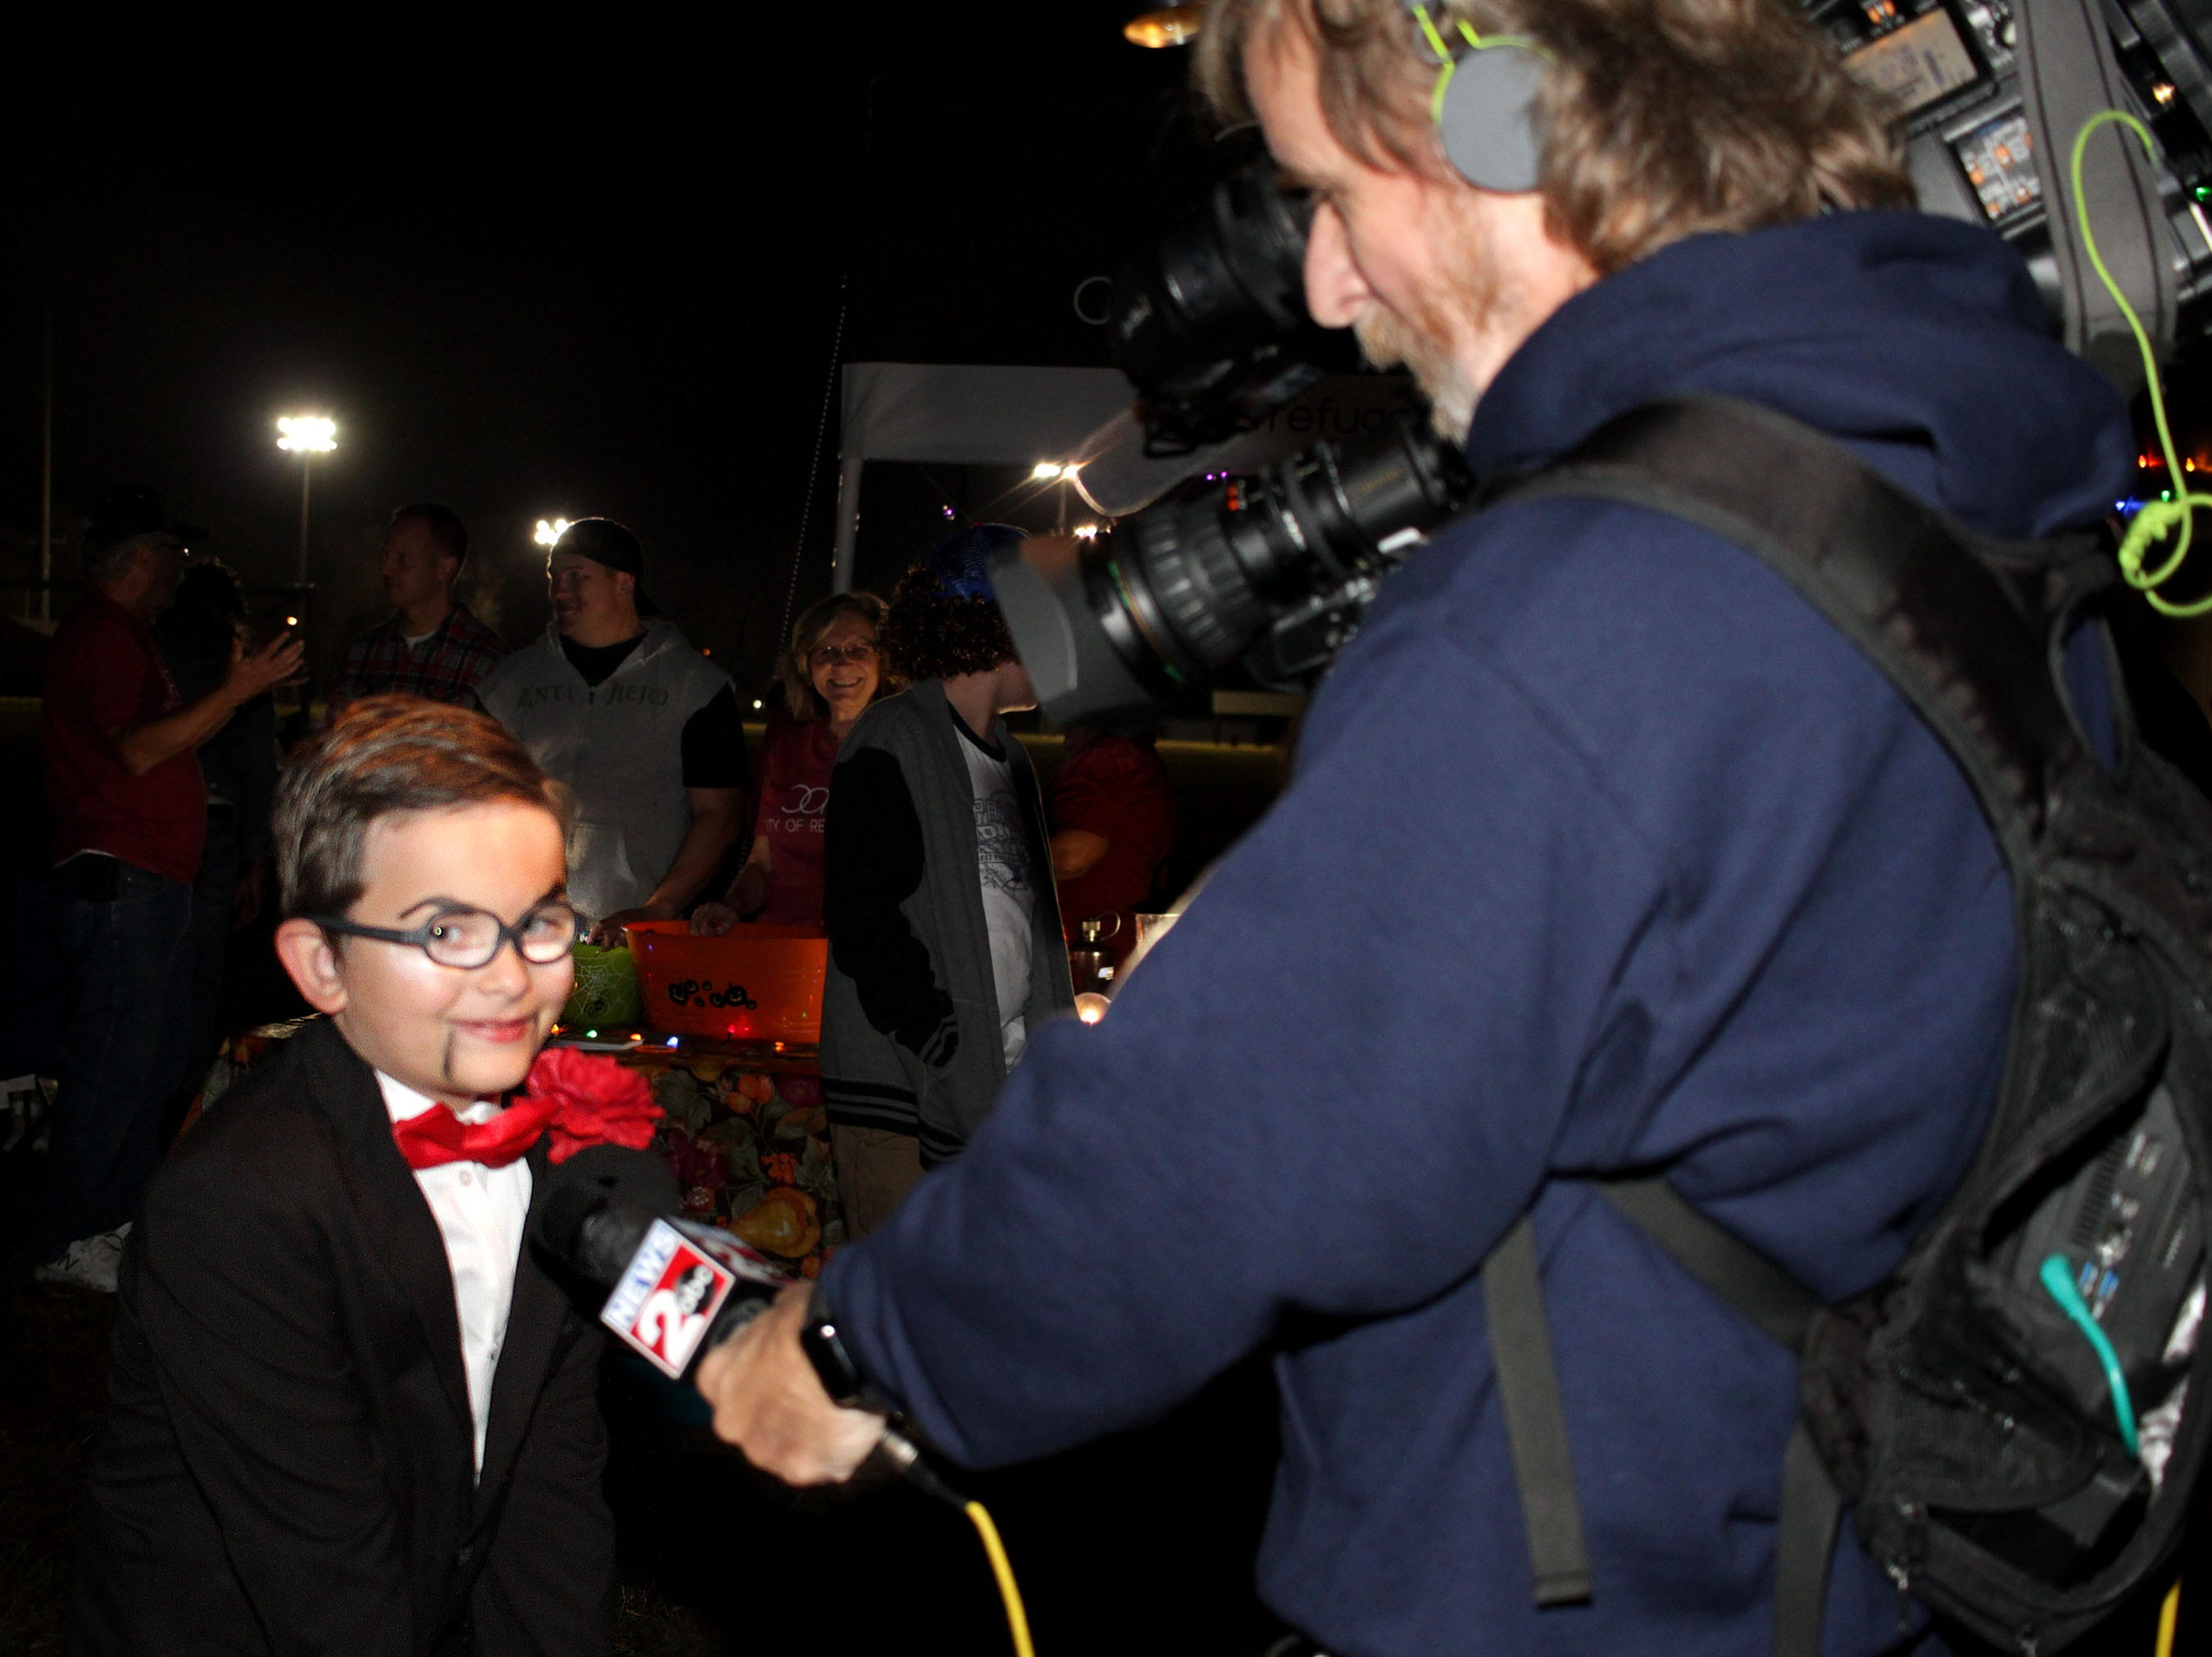 Nate Patterson (8) aka Slappy from Goosebumps II is interviewed while trick or treating at Drakes Creek Park in Hendersonville on Tuesday, October 30, 2018.